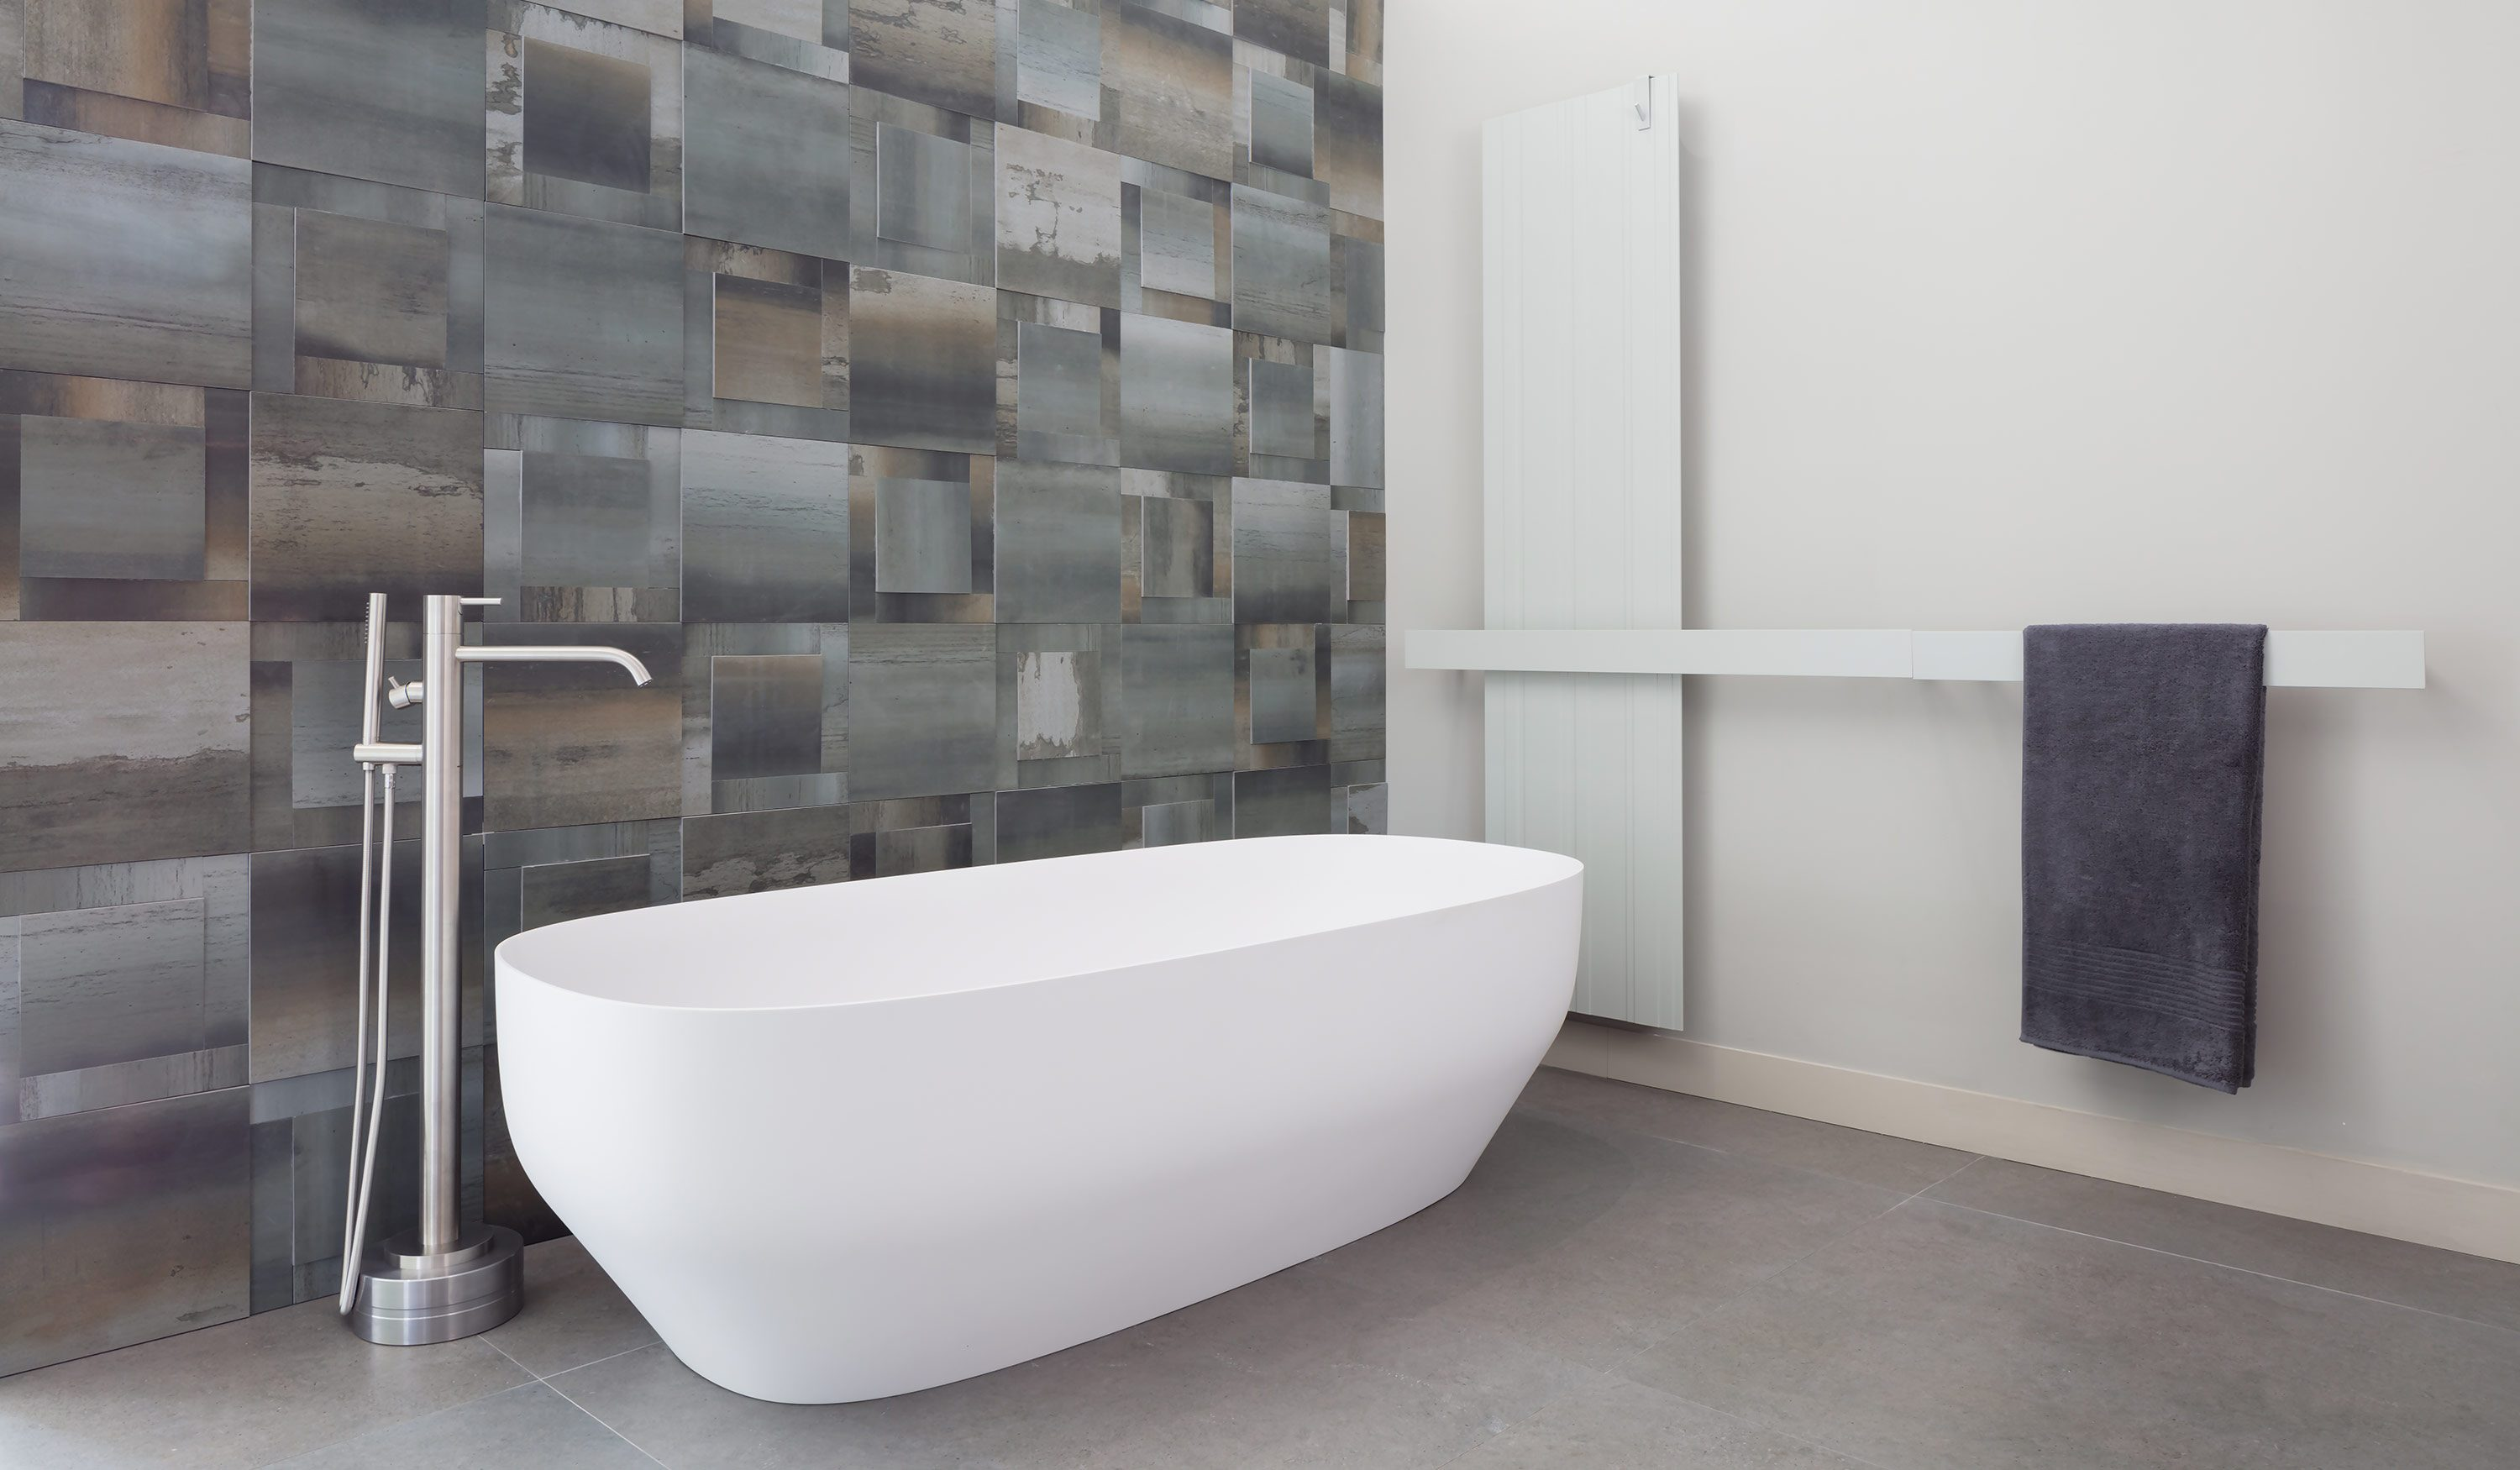 West One Bathrooms Notting Hill Showroom Westbourne Park Road 3